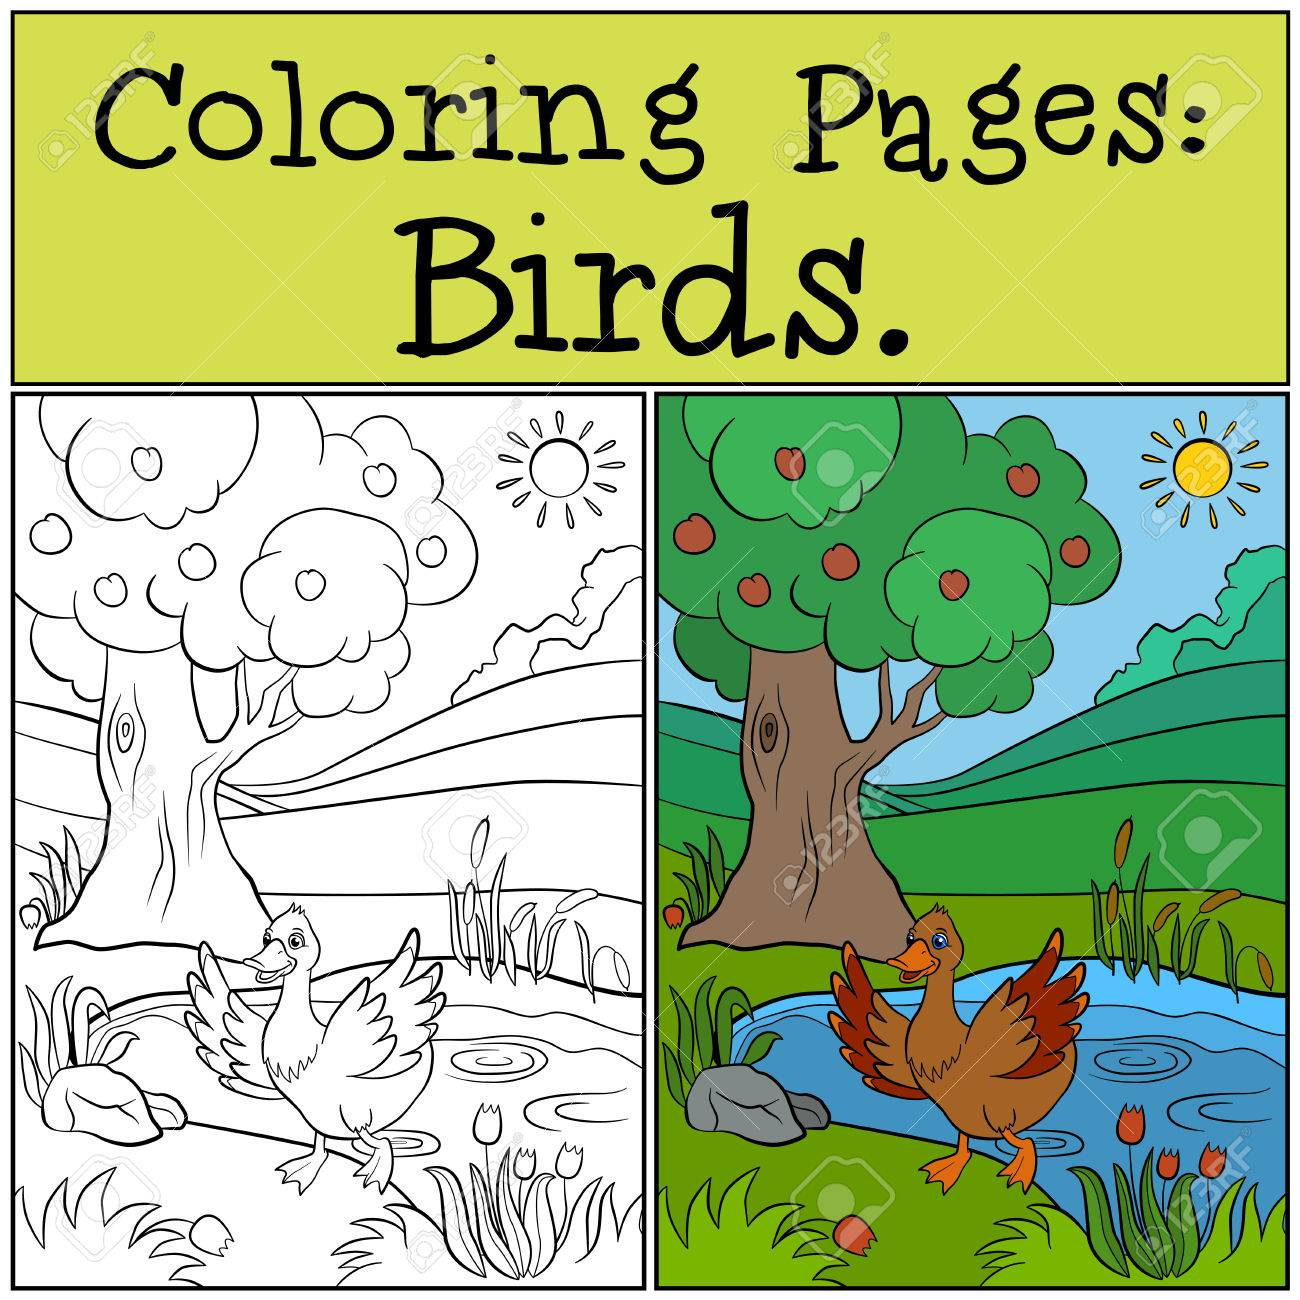 Coloring Pages: Birds. Little Cute Duck Runs From The Pond. Royalty ...